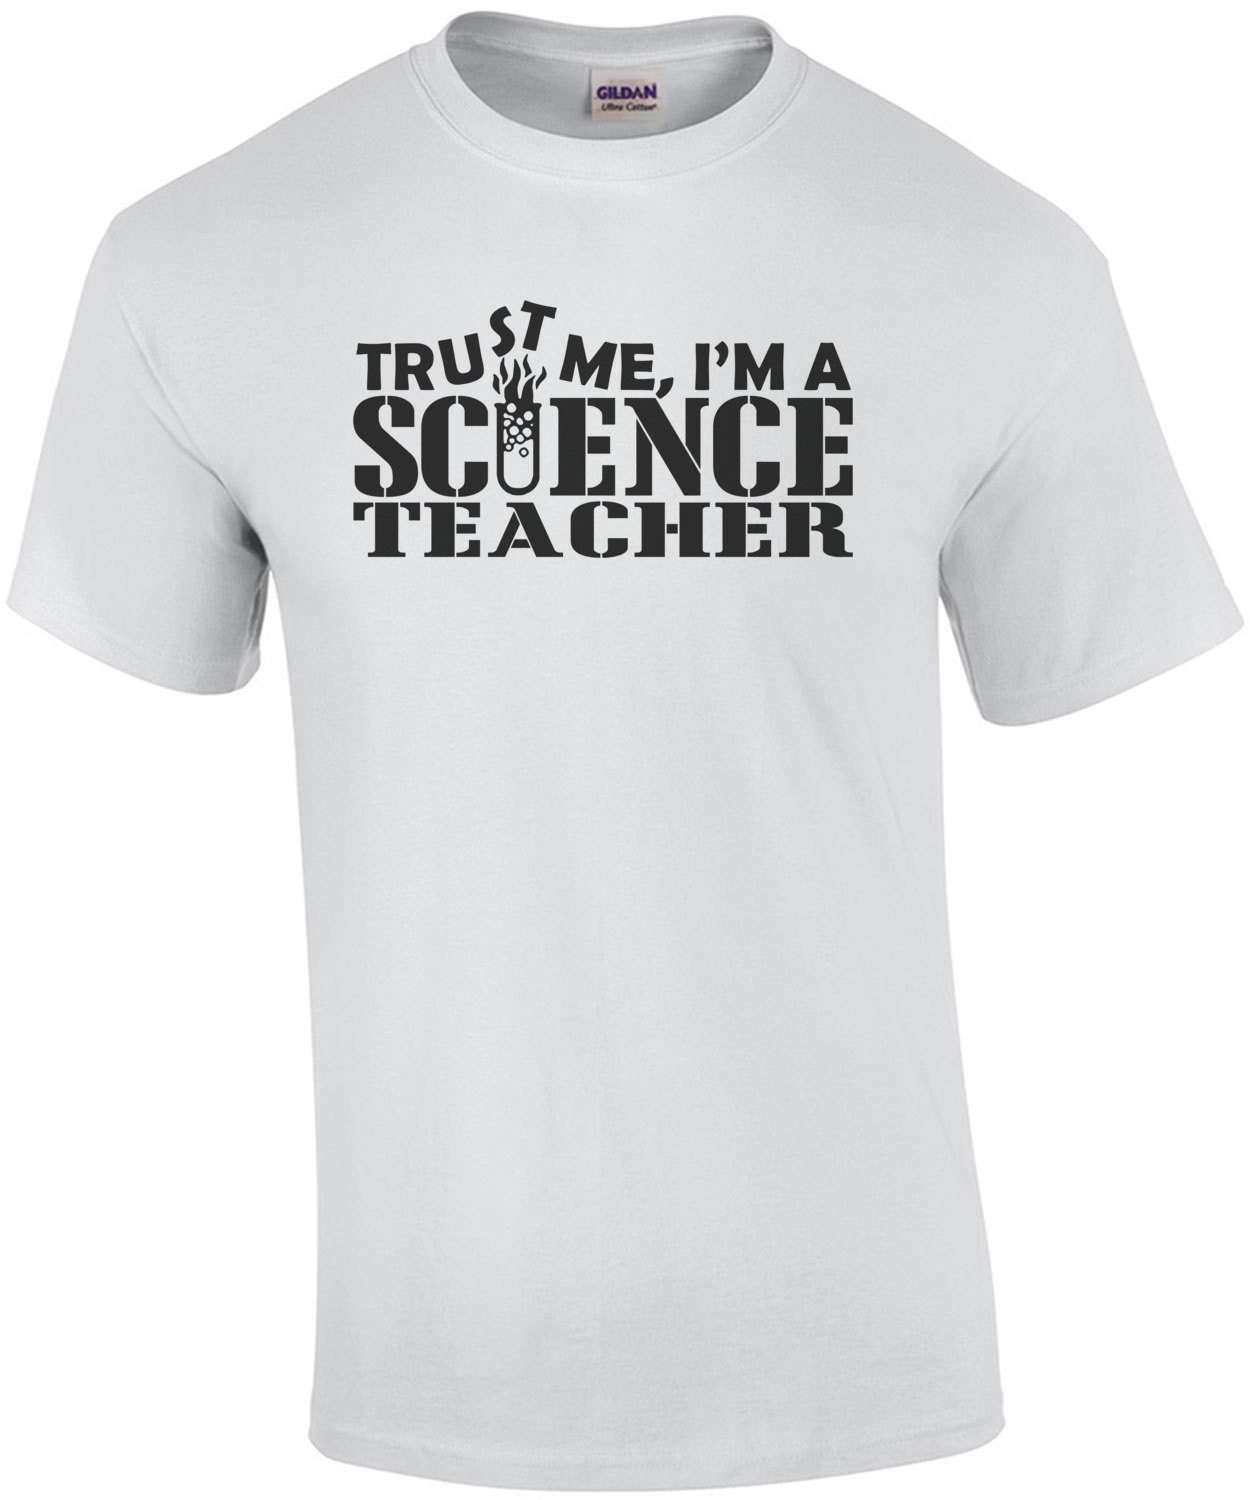 Trust Me I'm A Science Teacher T-Shirt